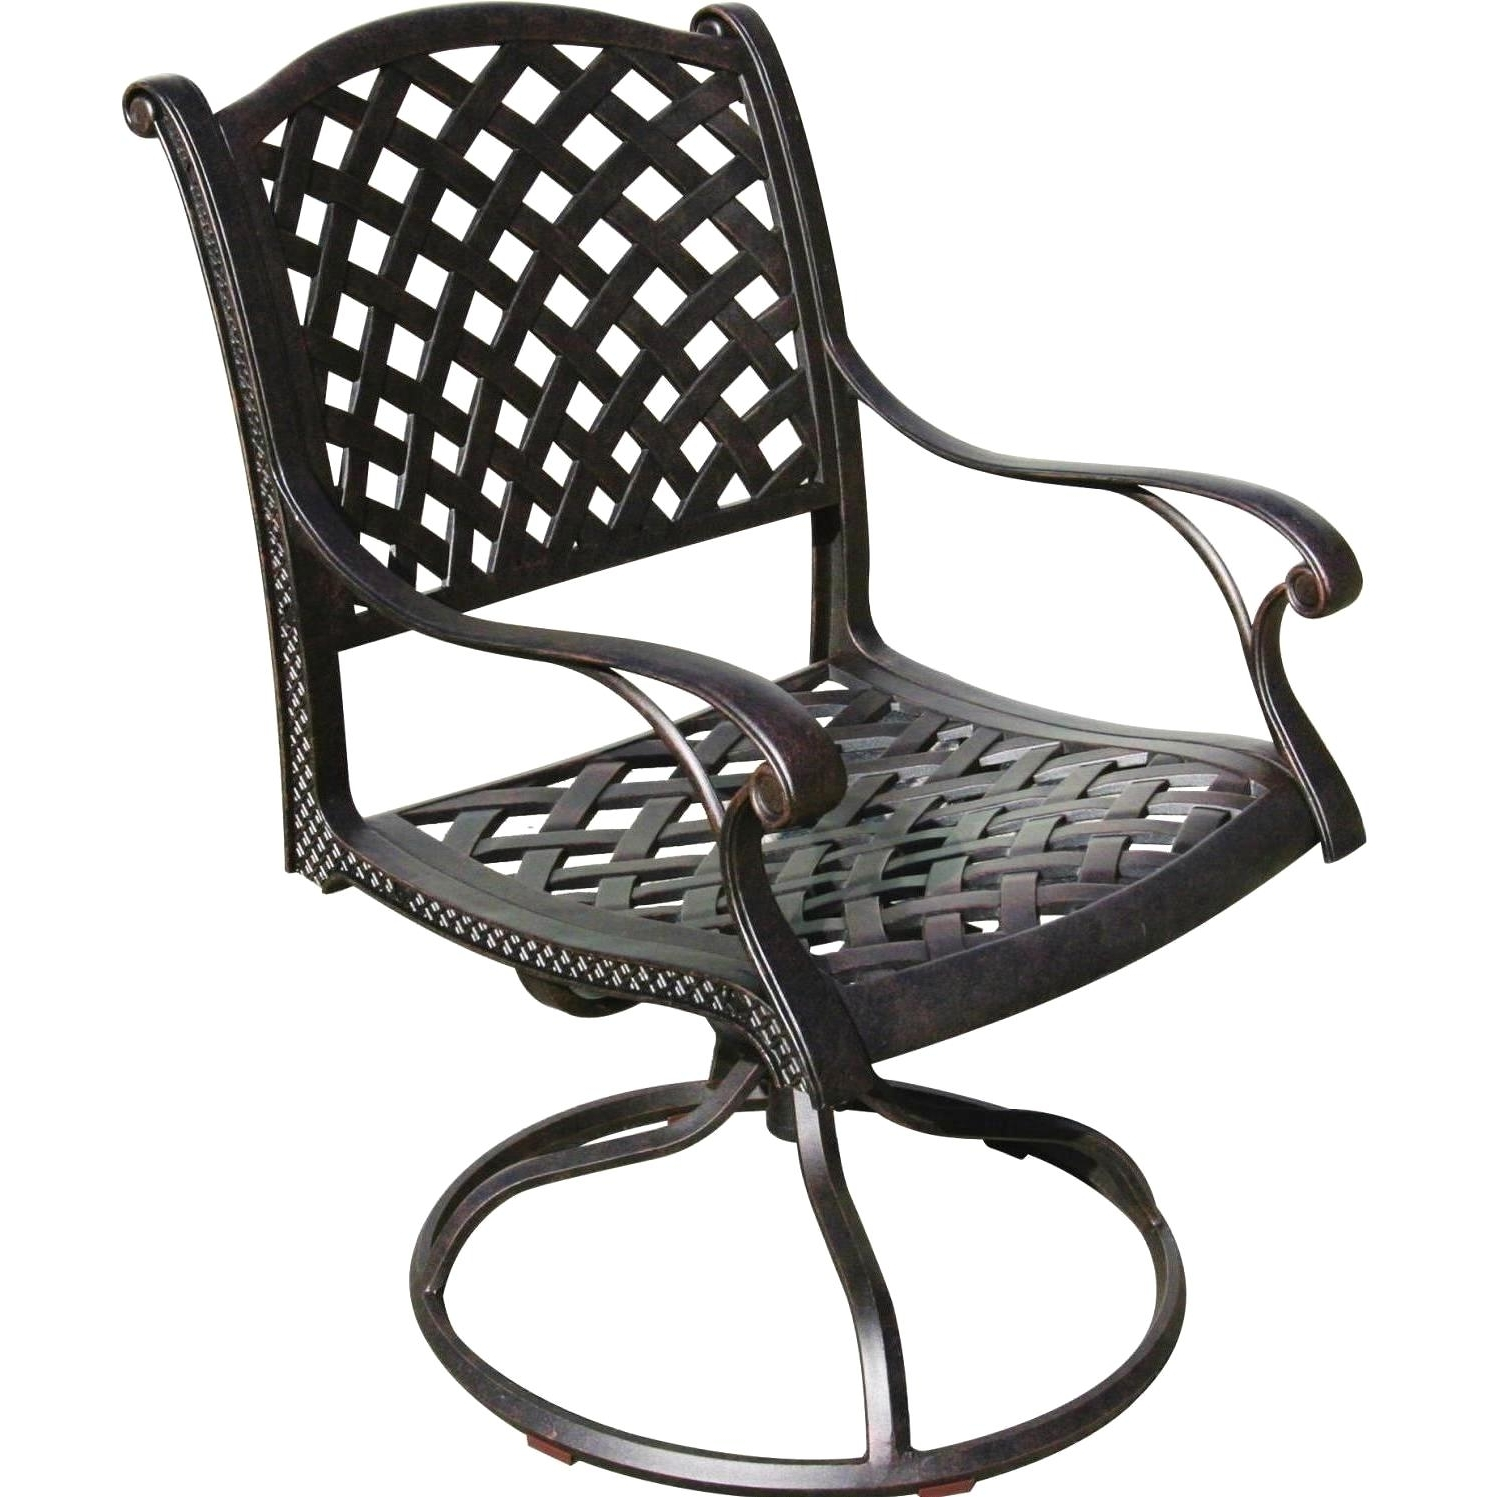 Adorable Patio Swivel Chairs High Chair Swivel Rocker Outdoor Dining For Best And Newest Patio Rocking Swivel Chairs (View 4 of 15)